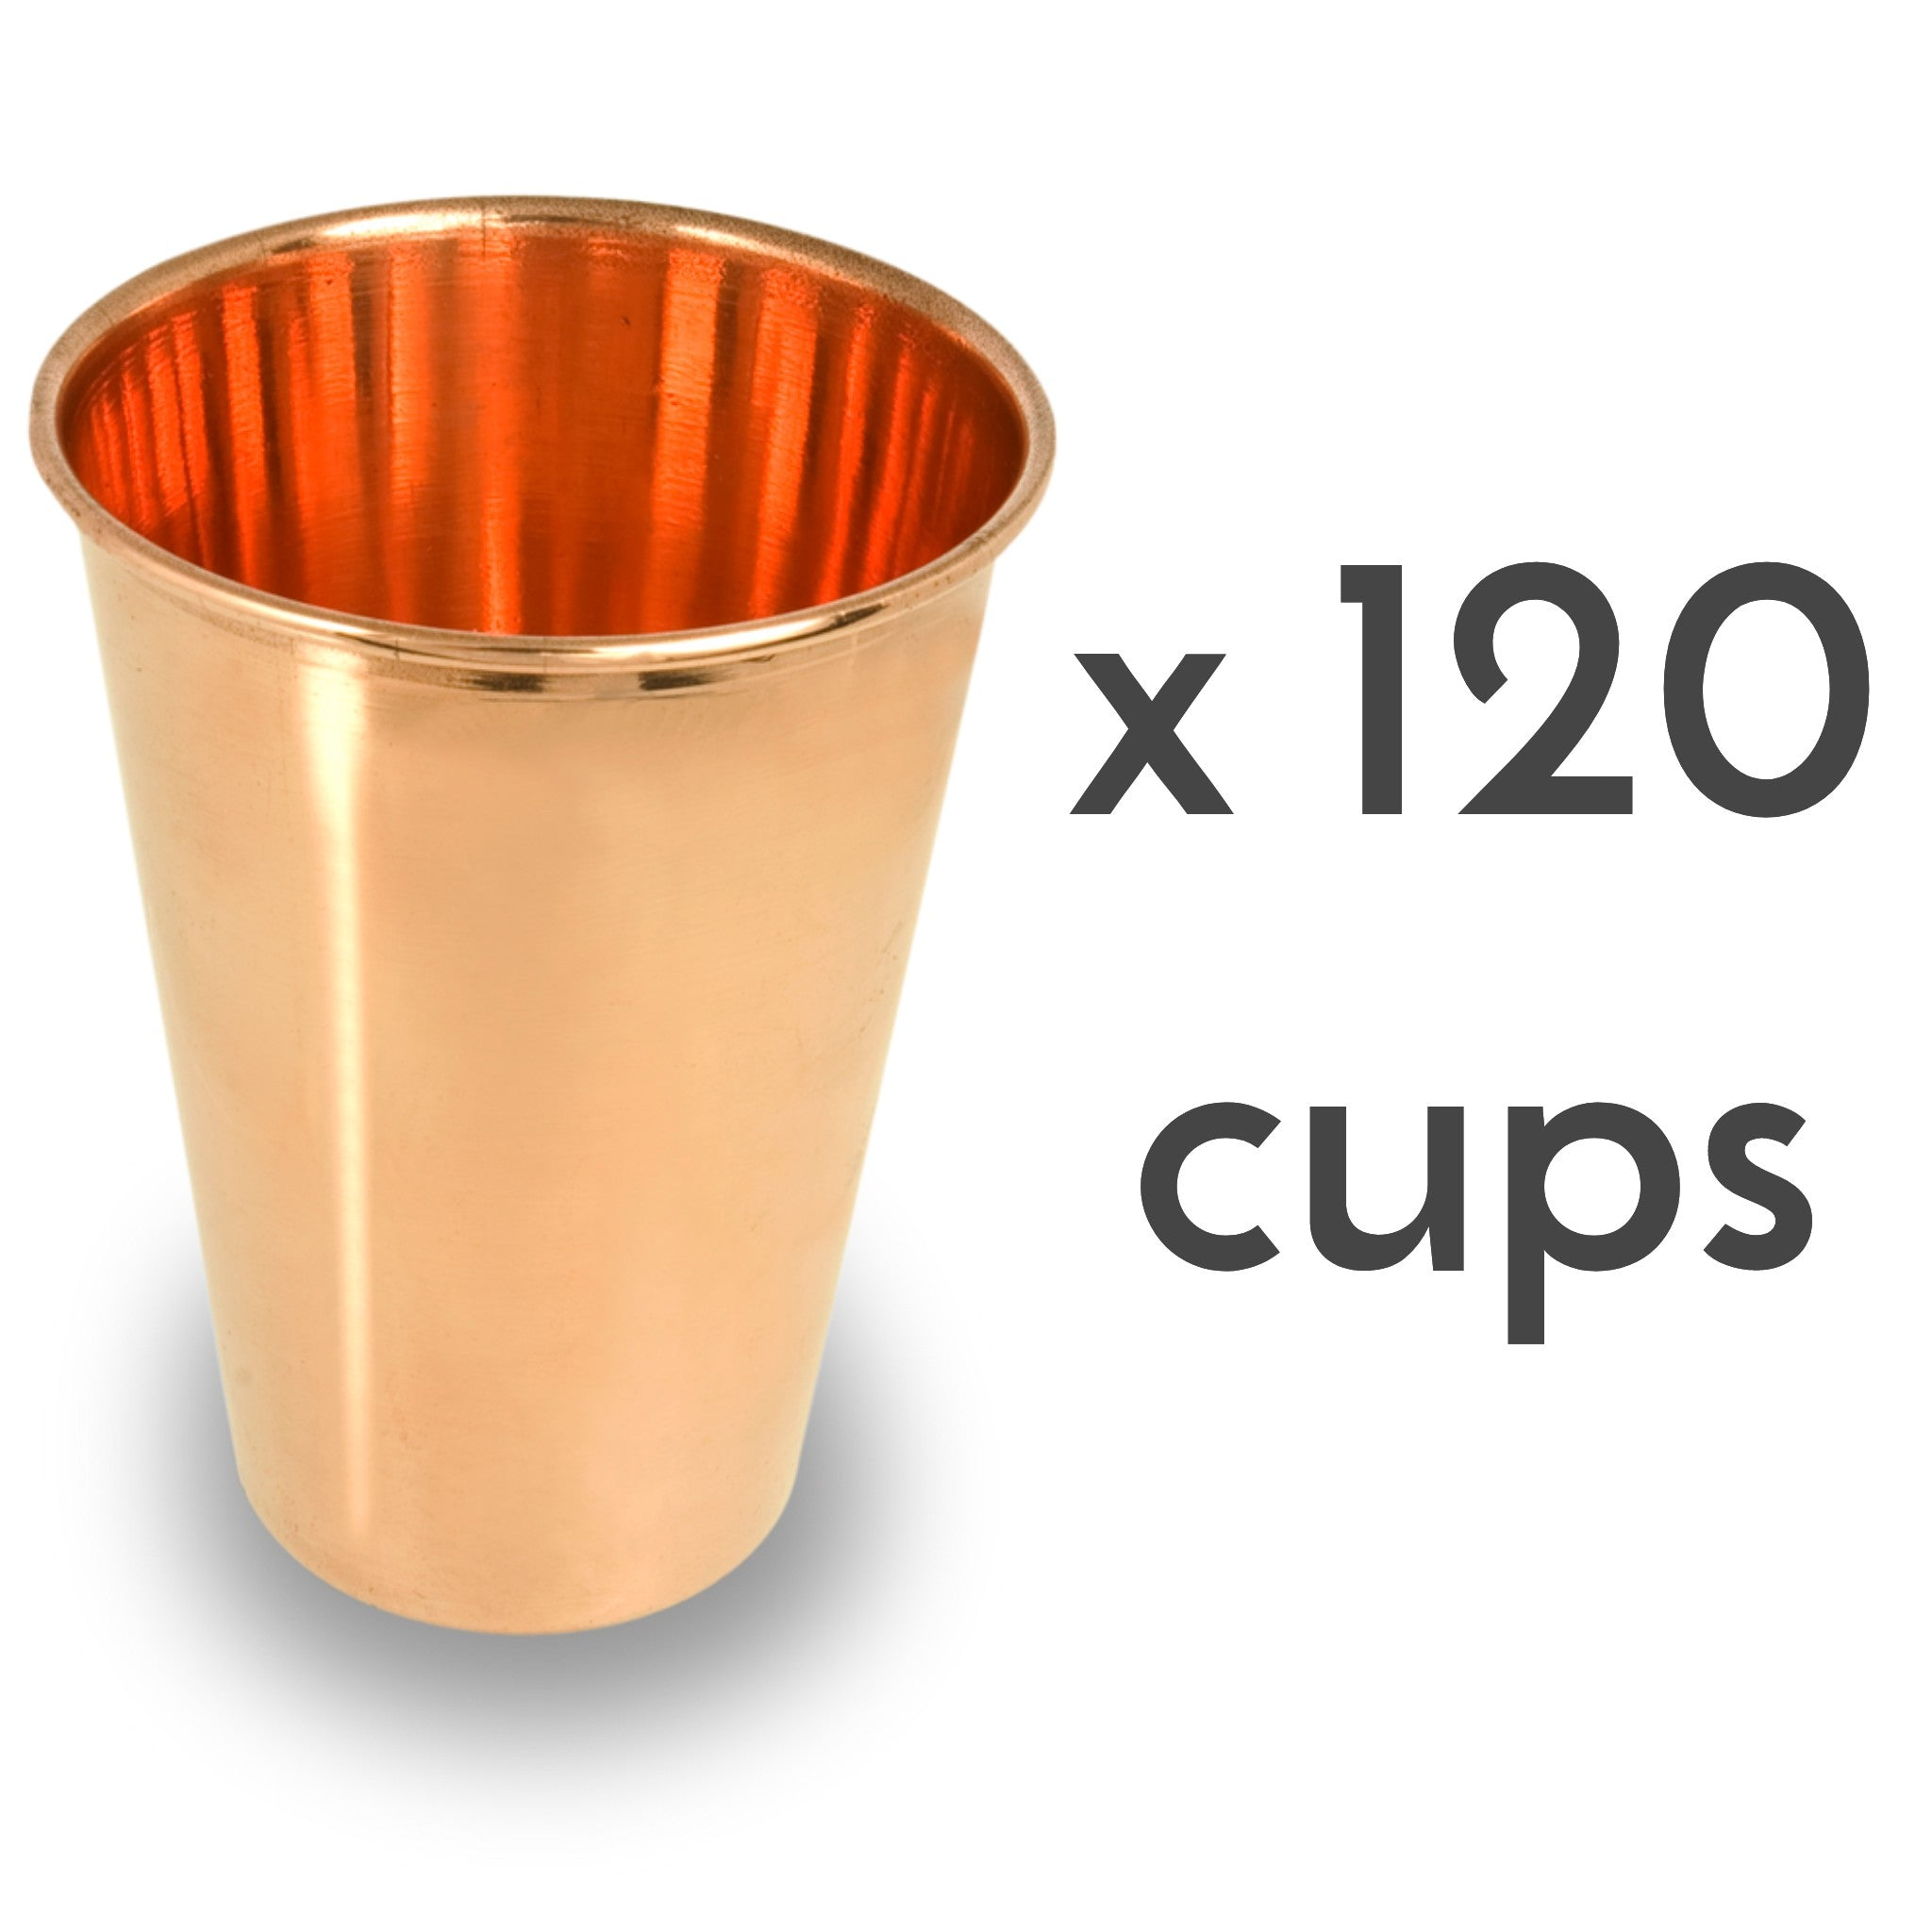 Ayurvedic pure copper drinking cups 120 units